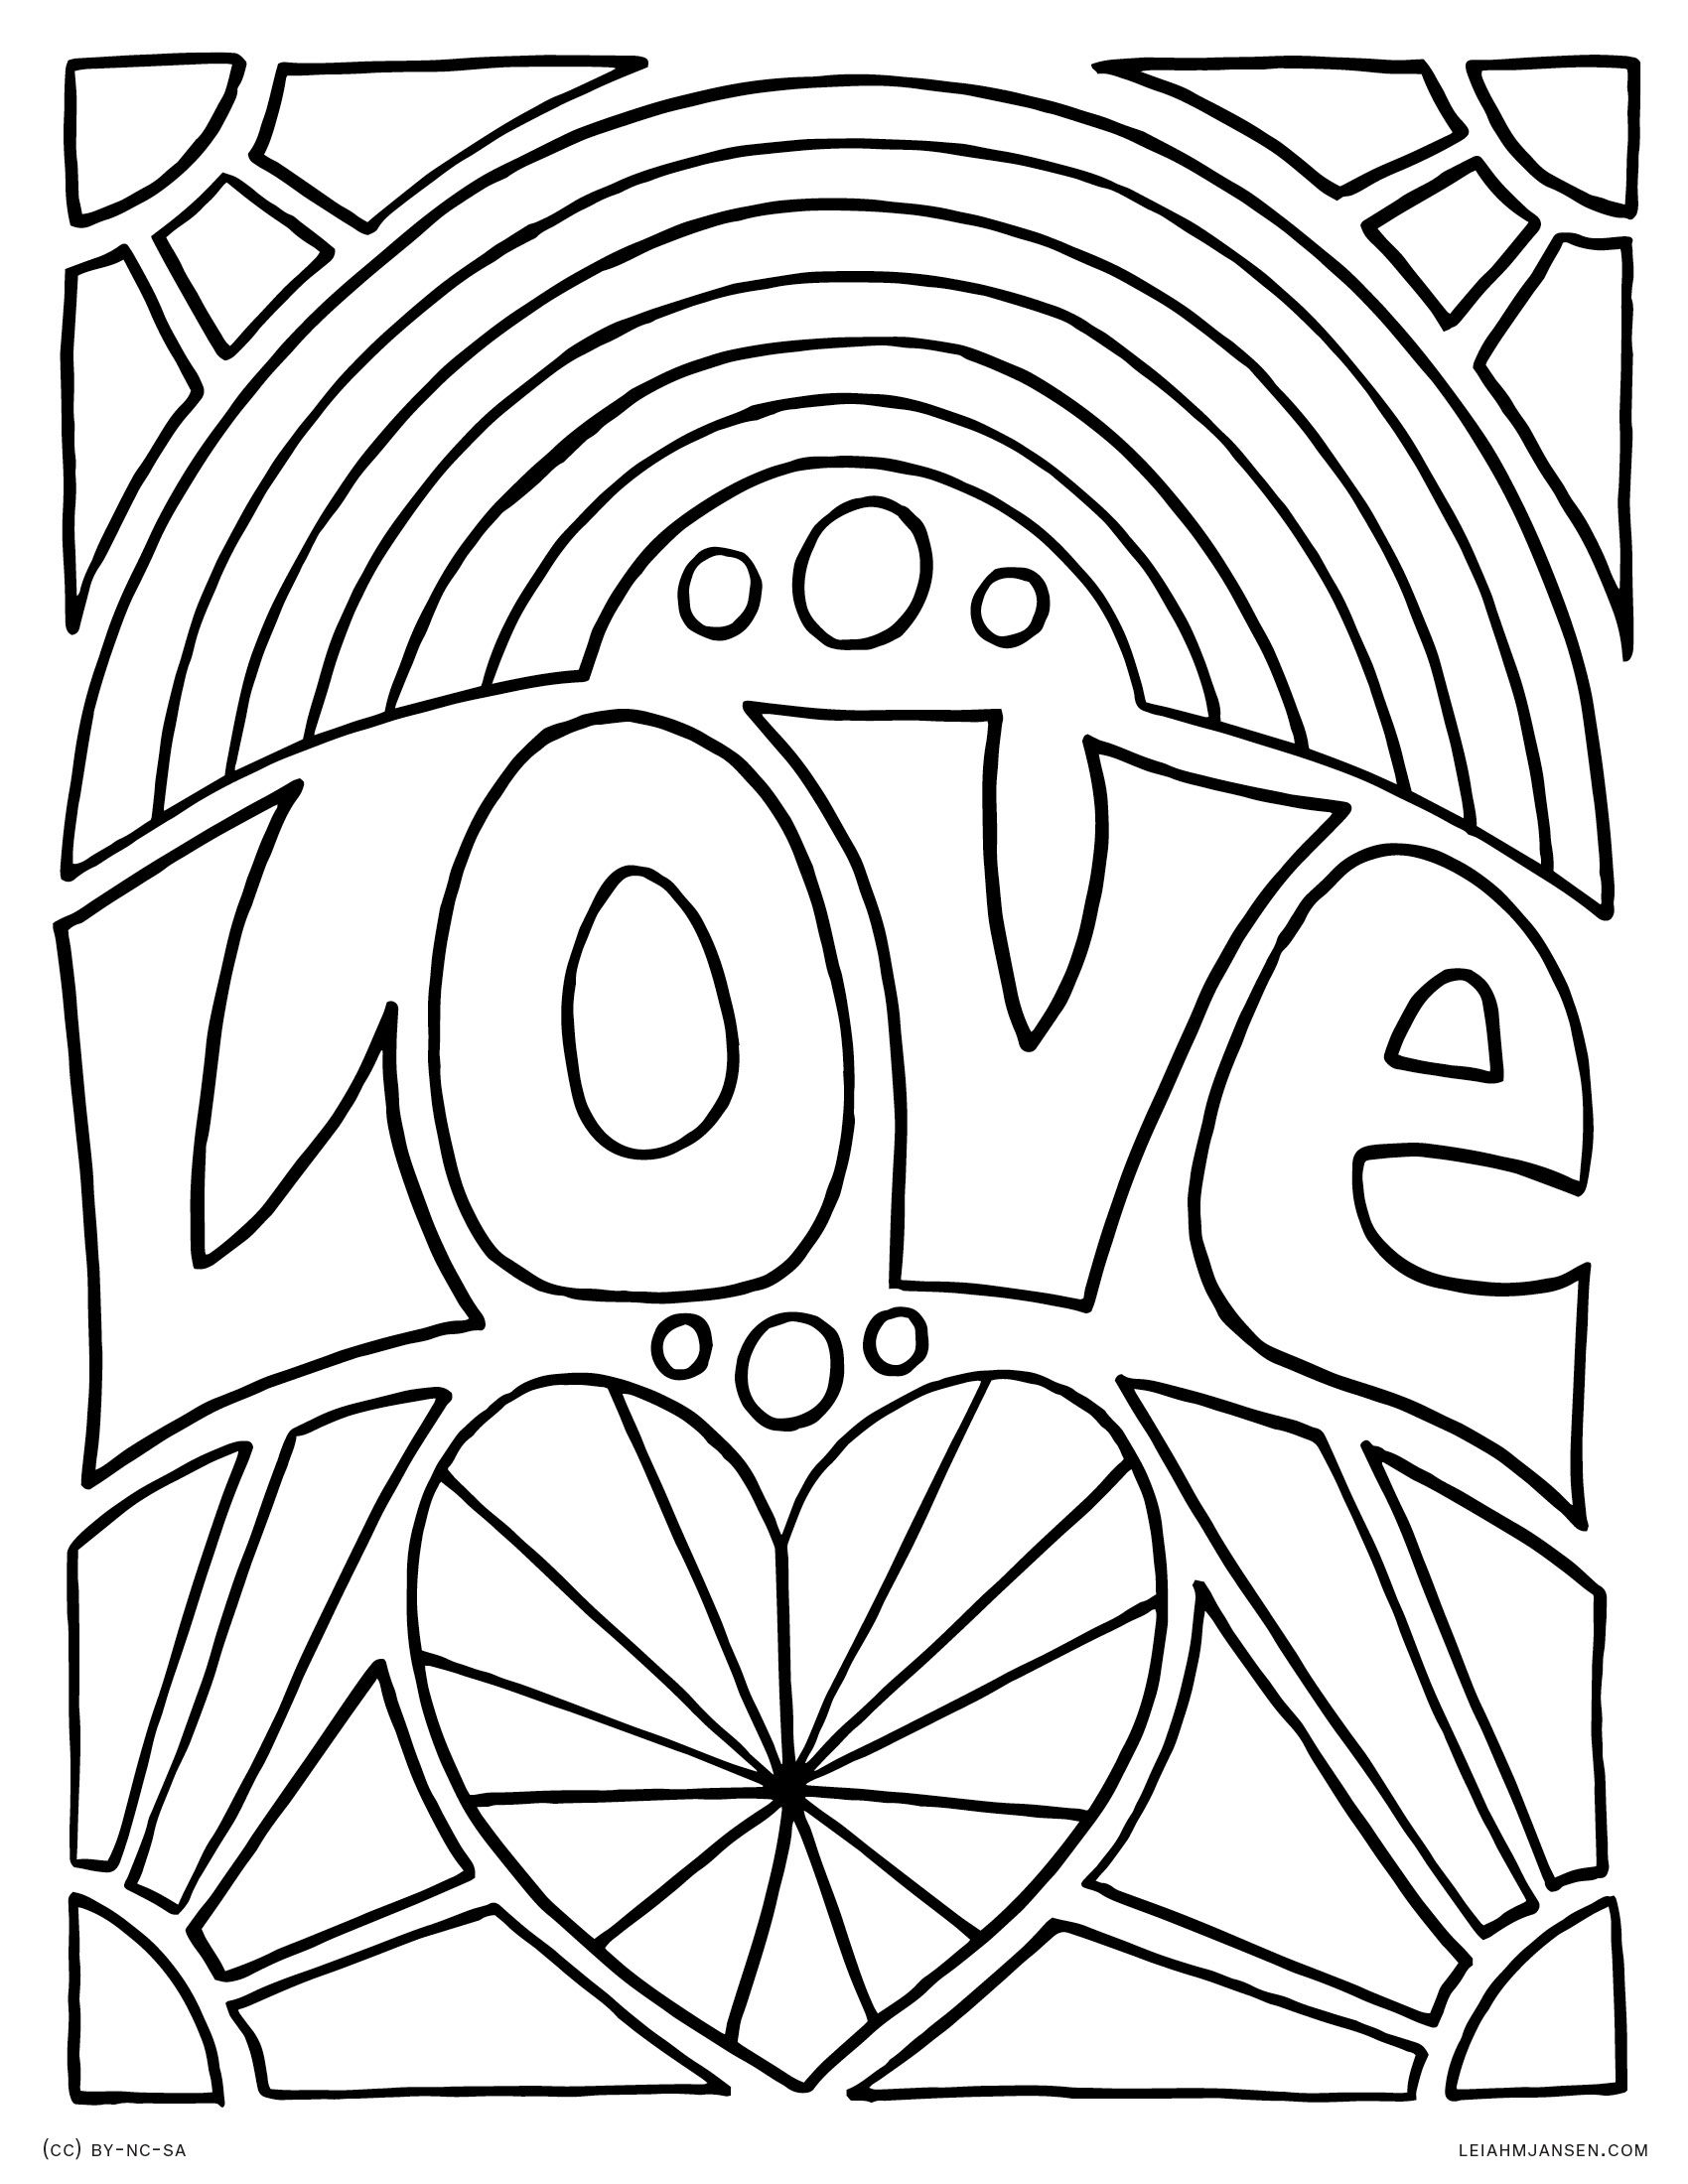 Rainbow Coloring Pages Heart Coloring Pages Adult Coloring